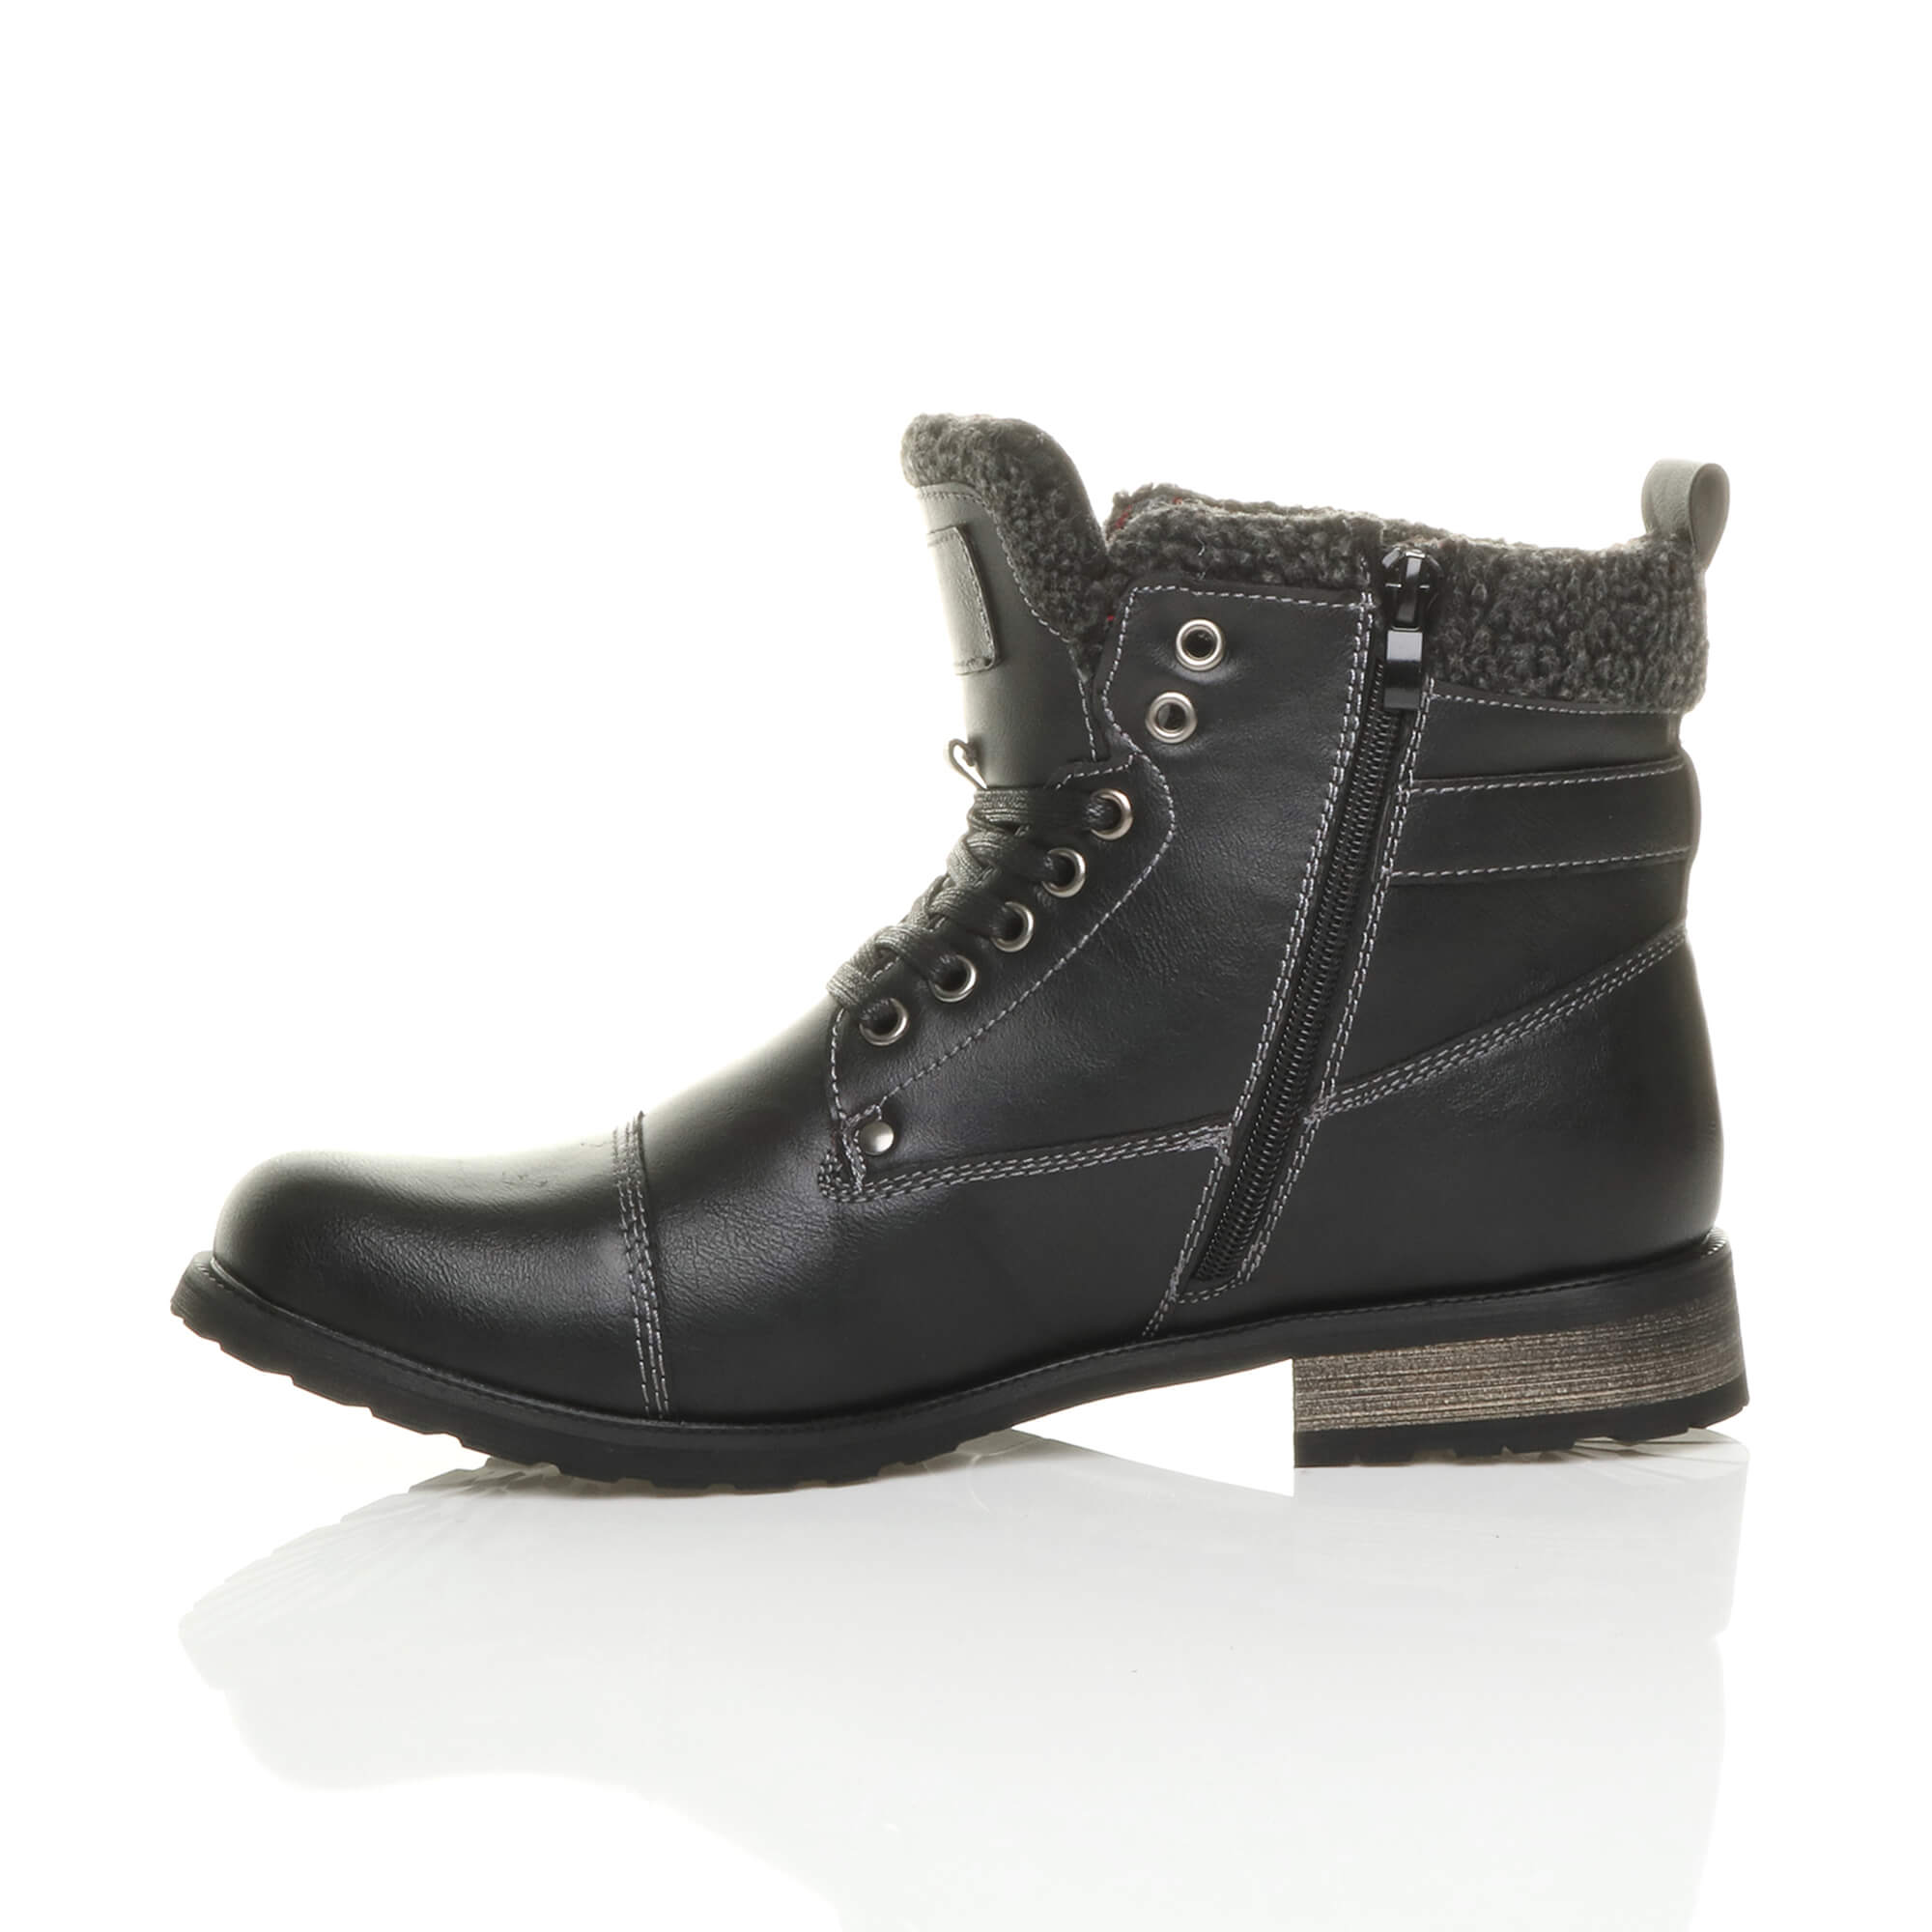 MENS-LACE-UP-ZIP-FUR-TRIM-SMART-WORK-WINTER-ARMY-MILITARY-BIKER-ANKLE-BOOTS-SIZE thumbnail 4